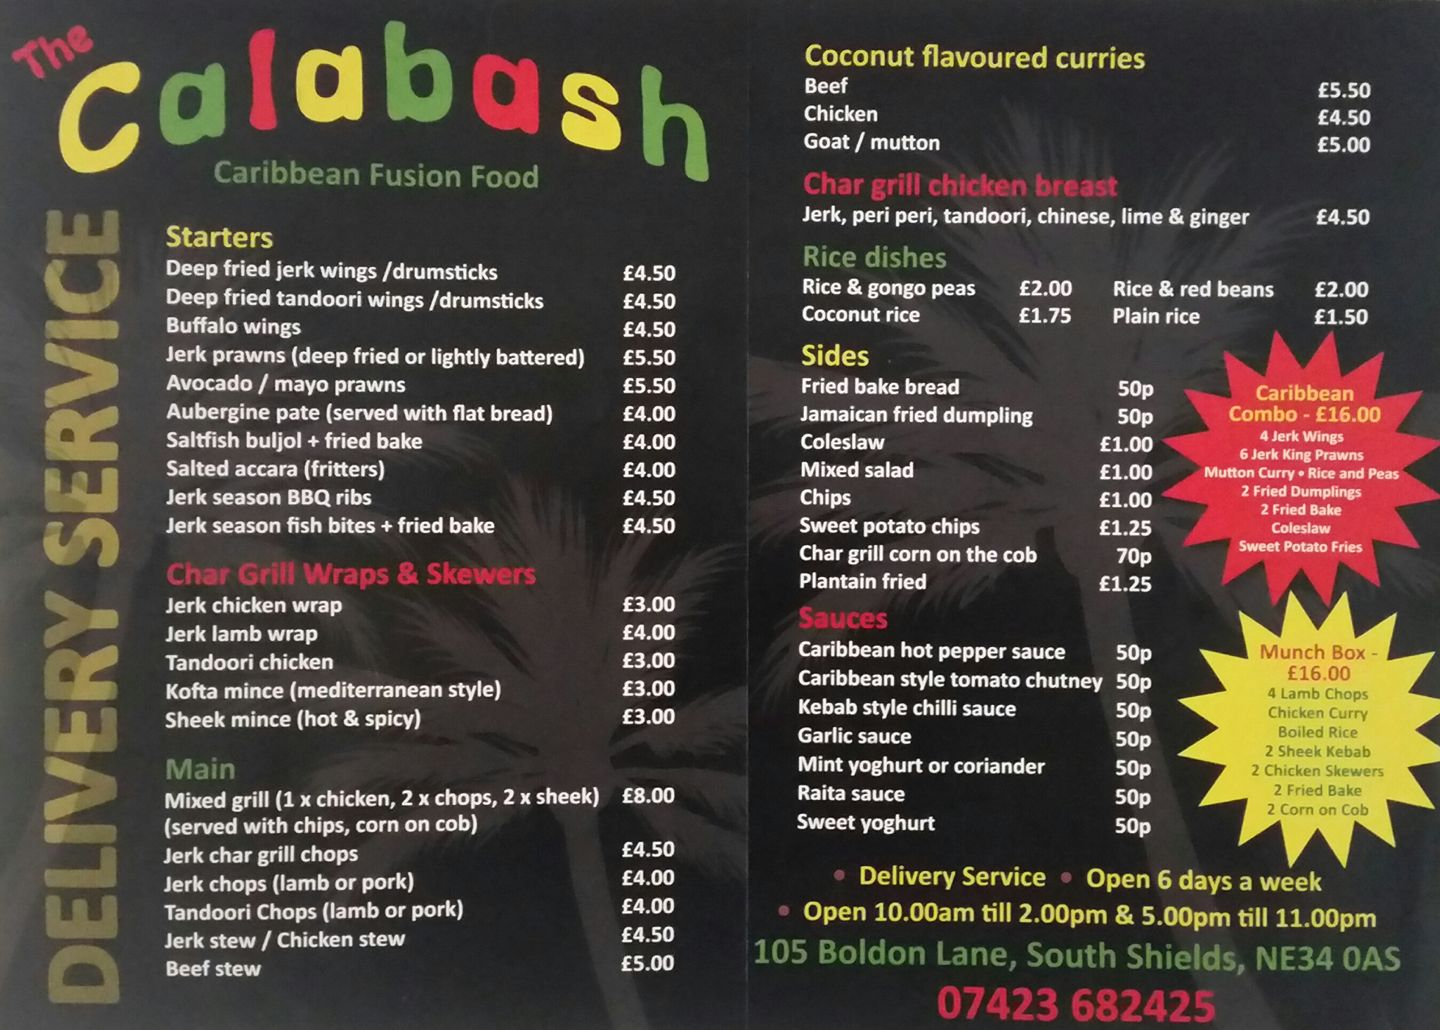 The Calabash 105 Boldon Lane South Shields NE34 0AS New Menu